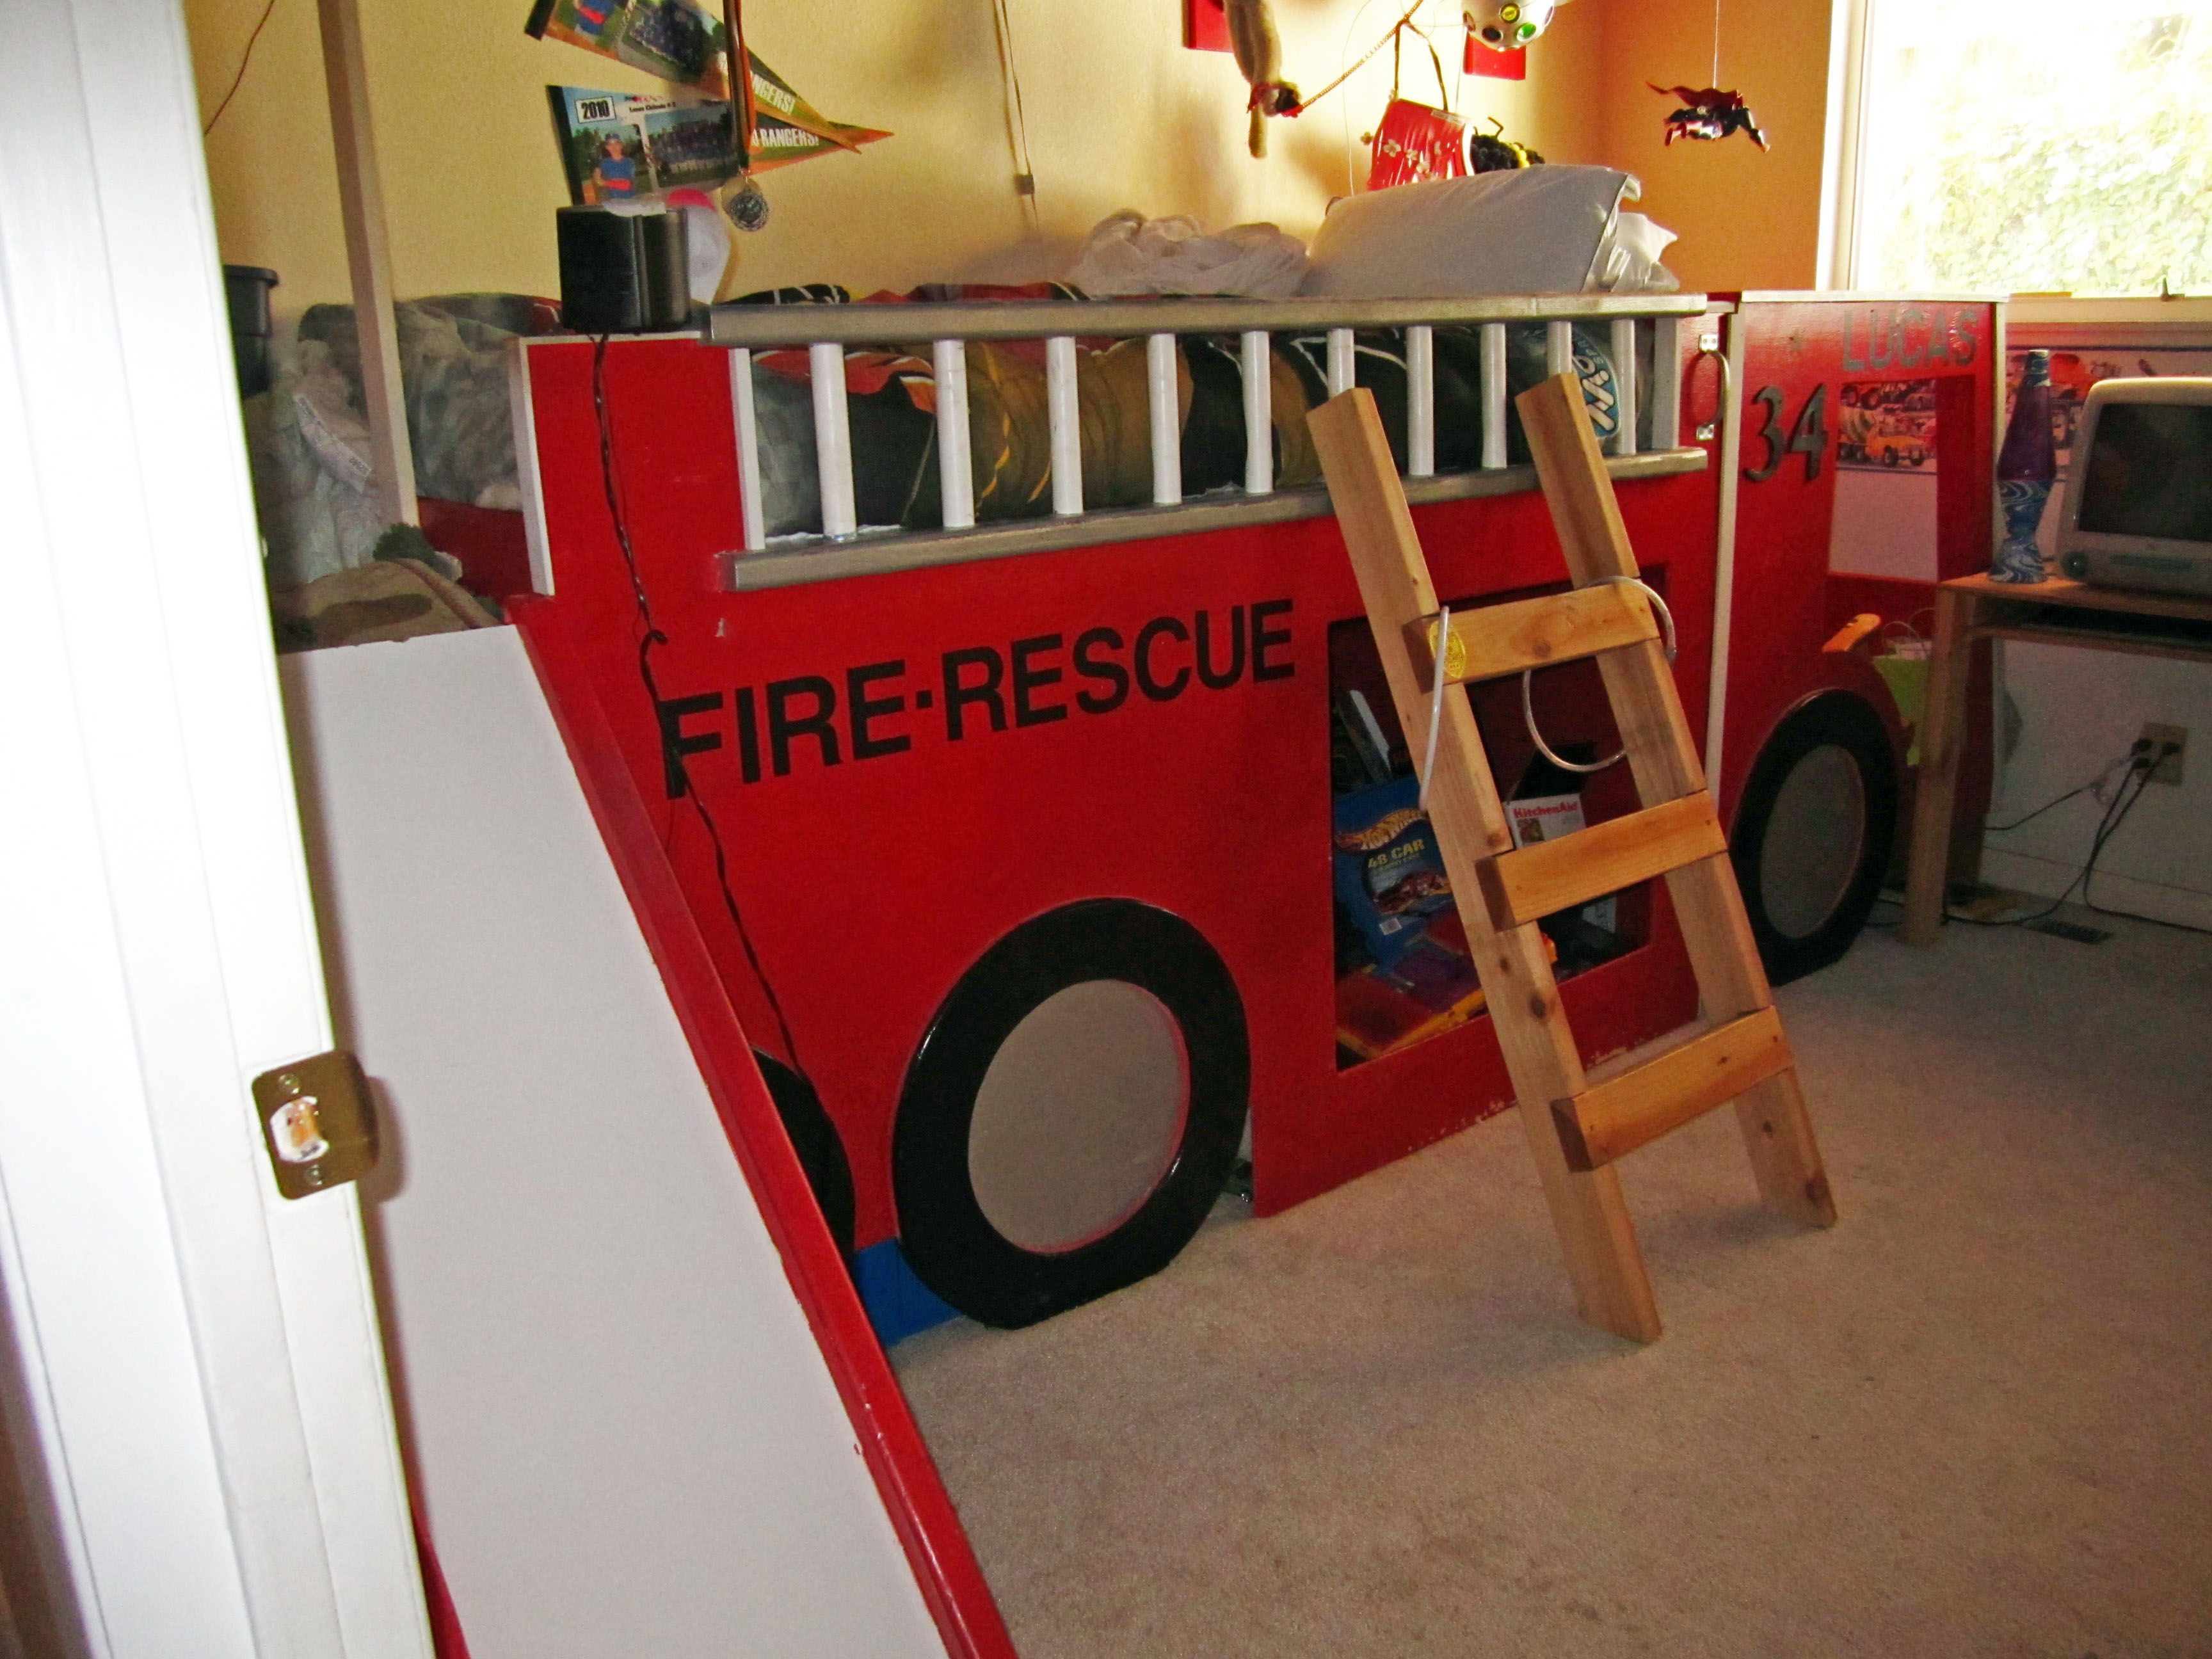 20 Best Fireman Bedroom Images On Pinterest | Fire Truck Beds, Firetruck  And Bedroom Ideas